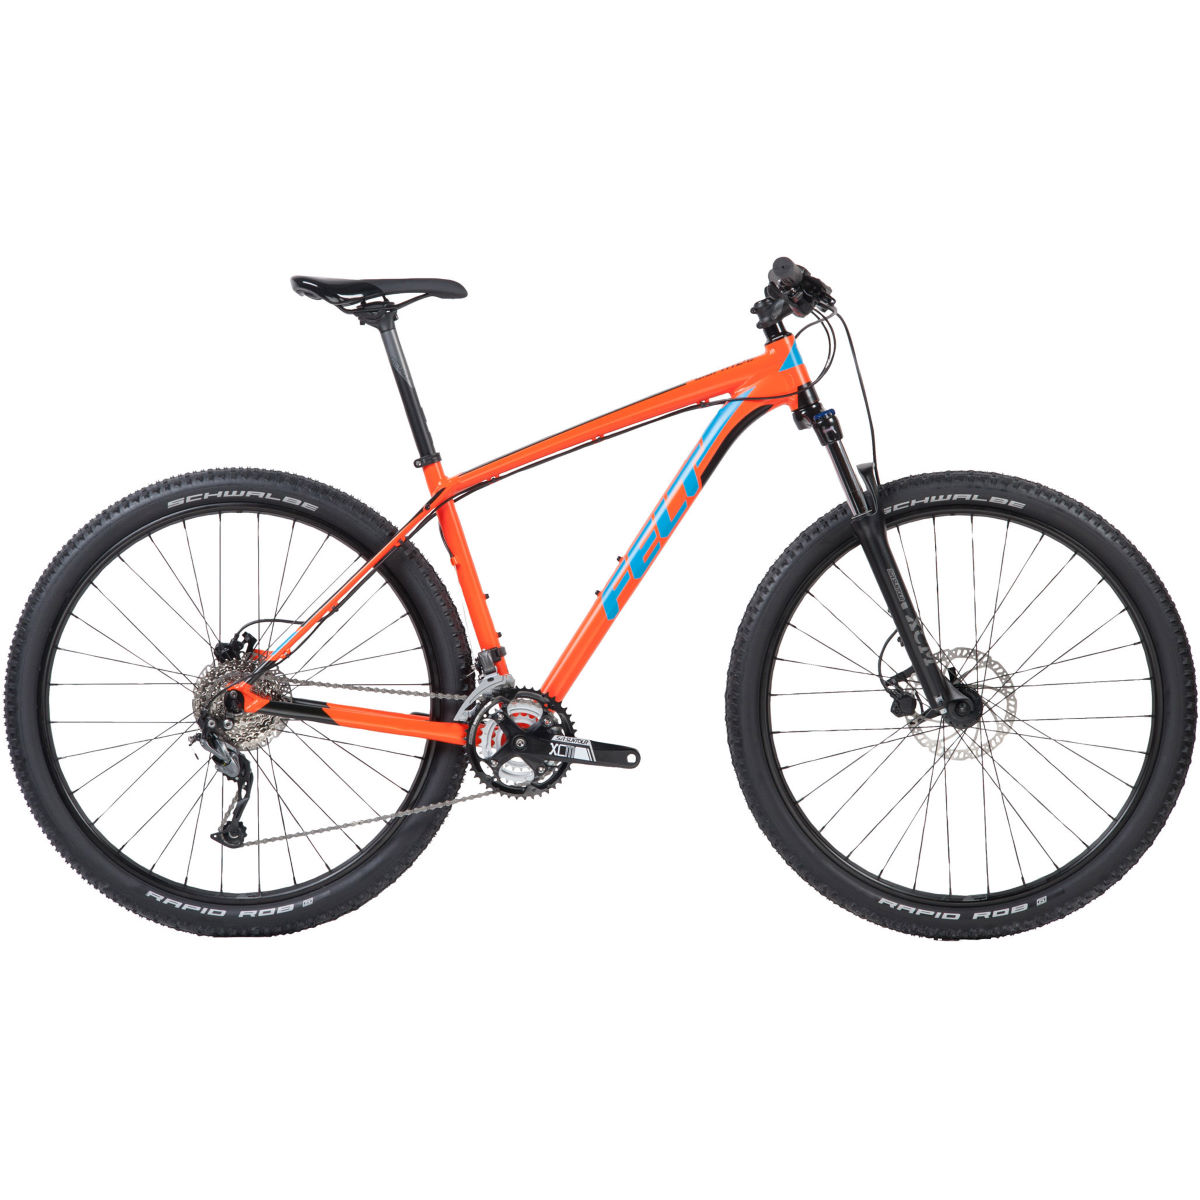 VTT semi-rigide Felt Dispatch 9/70 XC (2018) - 16'' Stock Bike